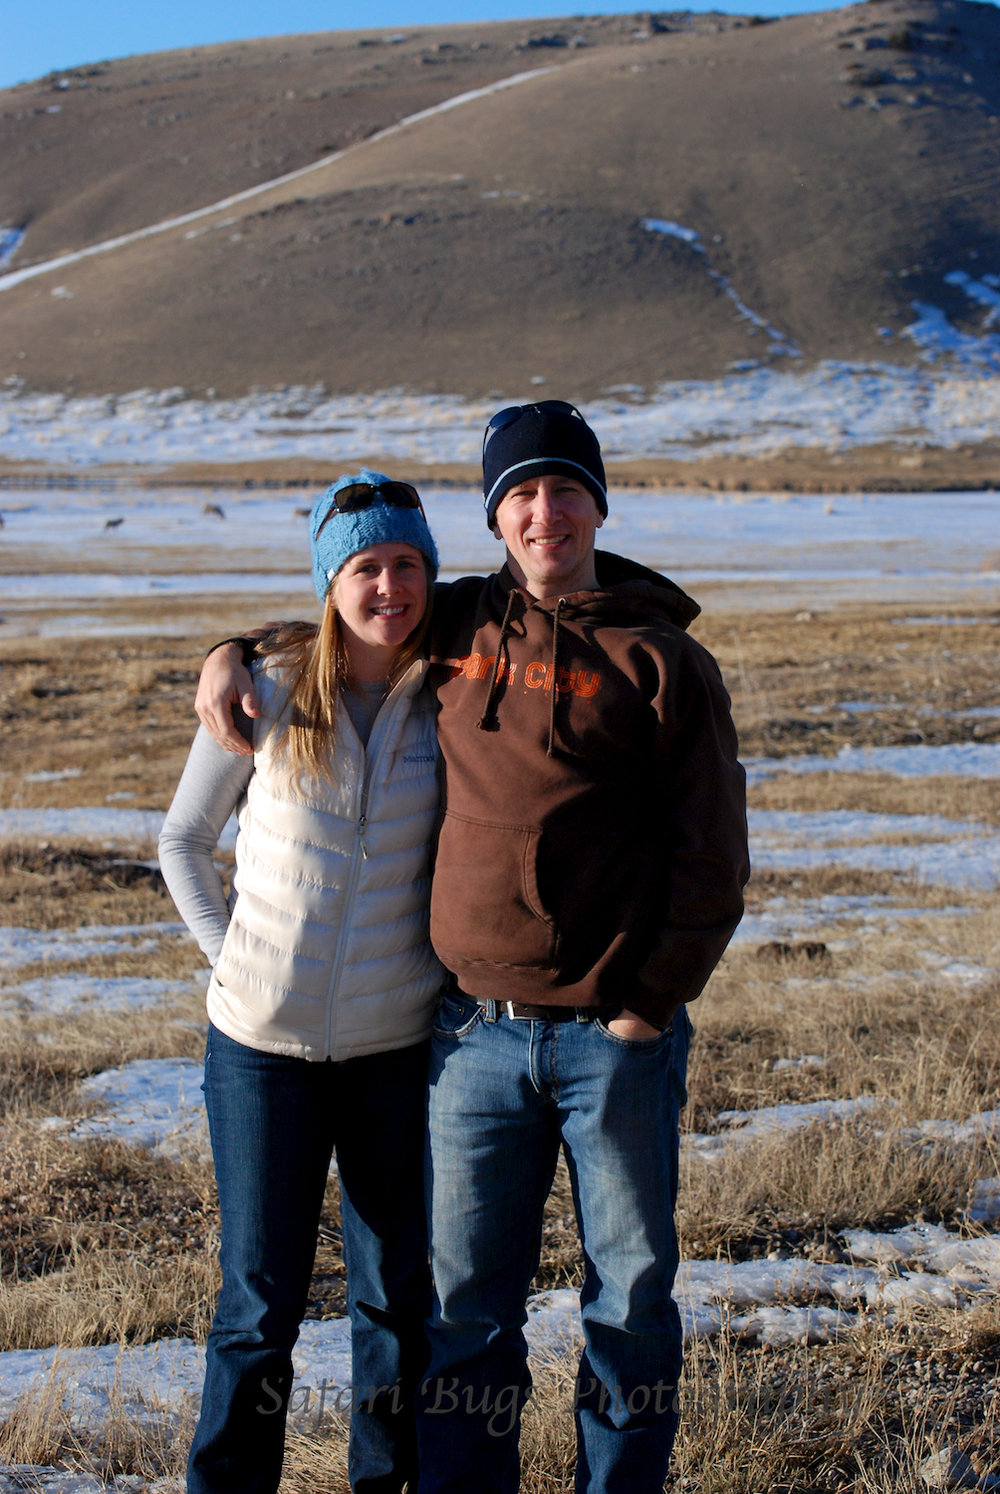 Steve and Ashleigh at the National Elk Refuge (for the record, the wind is pushing Steve's hoodie out)